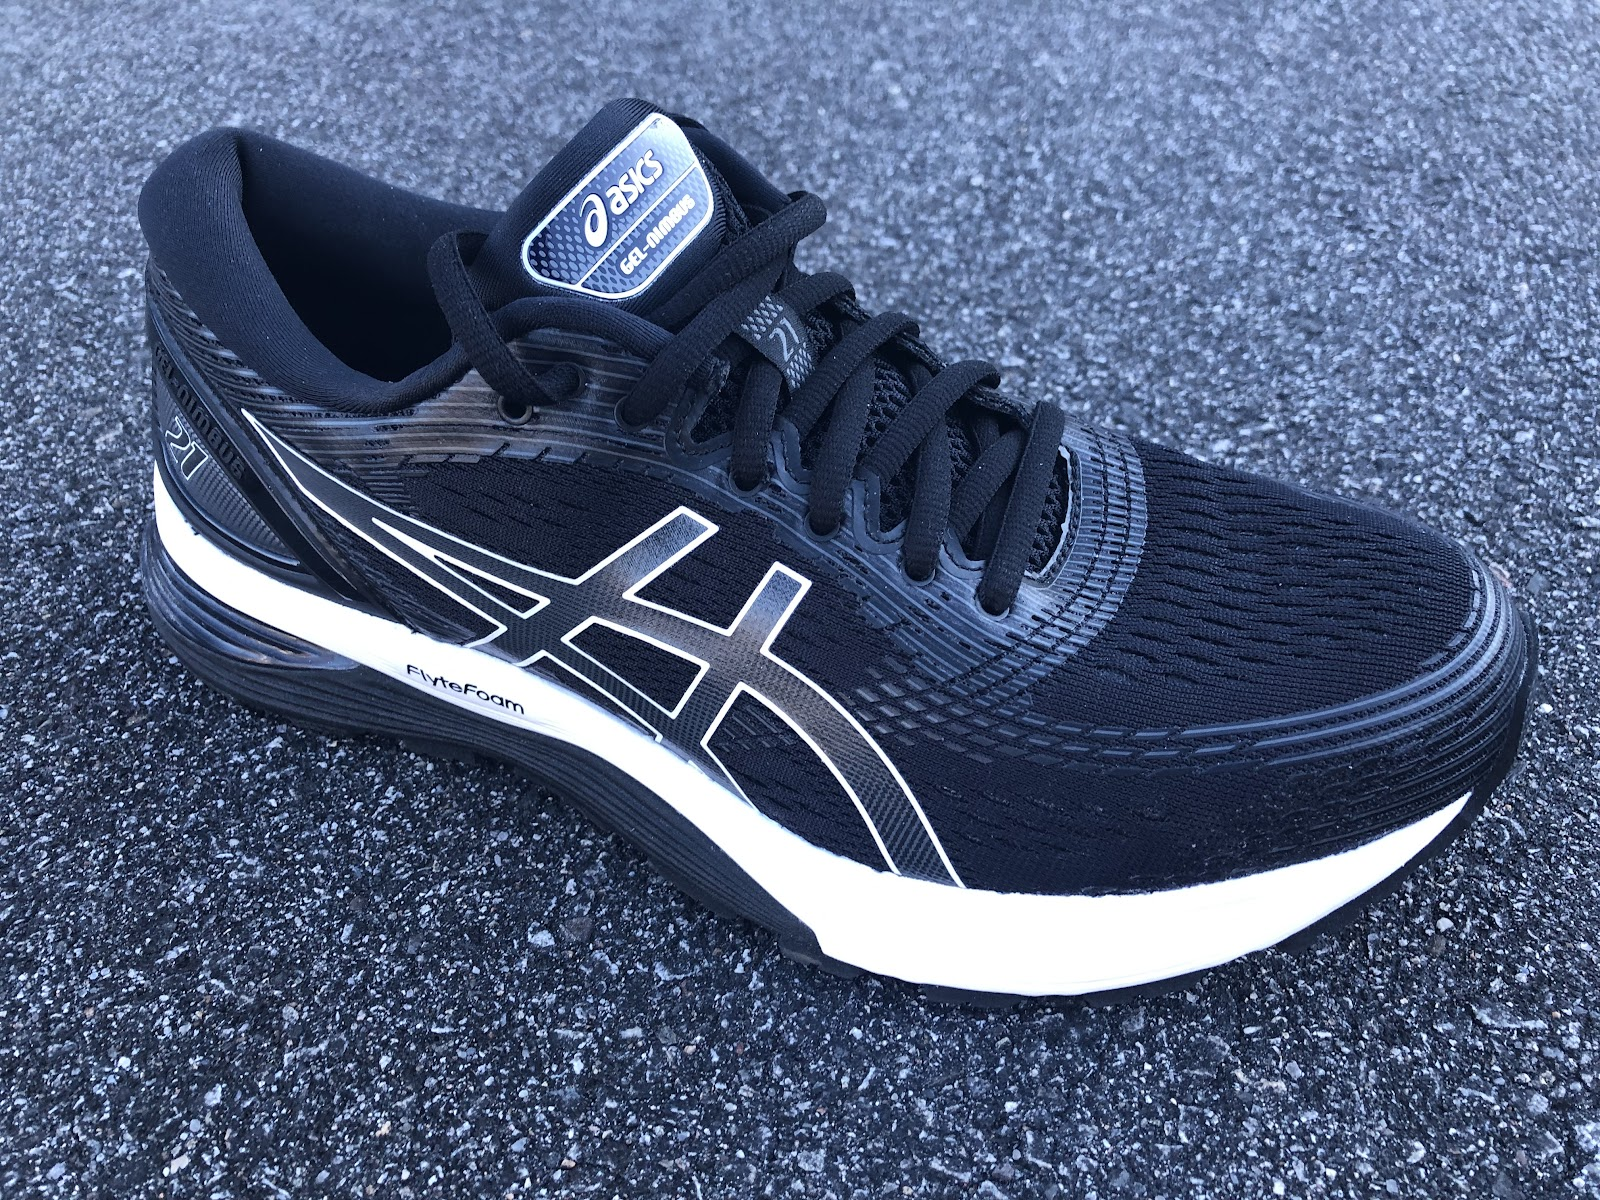 5cf55aaeaba Jeff: ASICS has a certain aesthetic they are going for, and they definitely  hit it with the Nimbus 21. If you are familiar with running shoes, ...